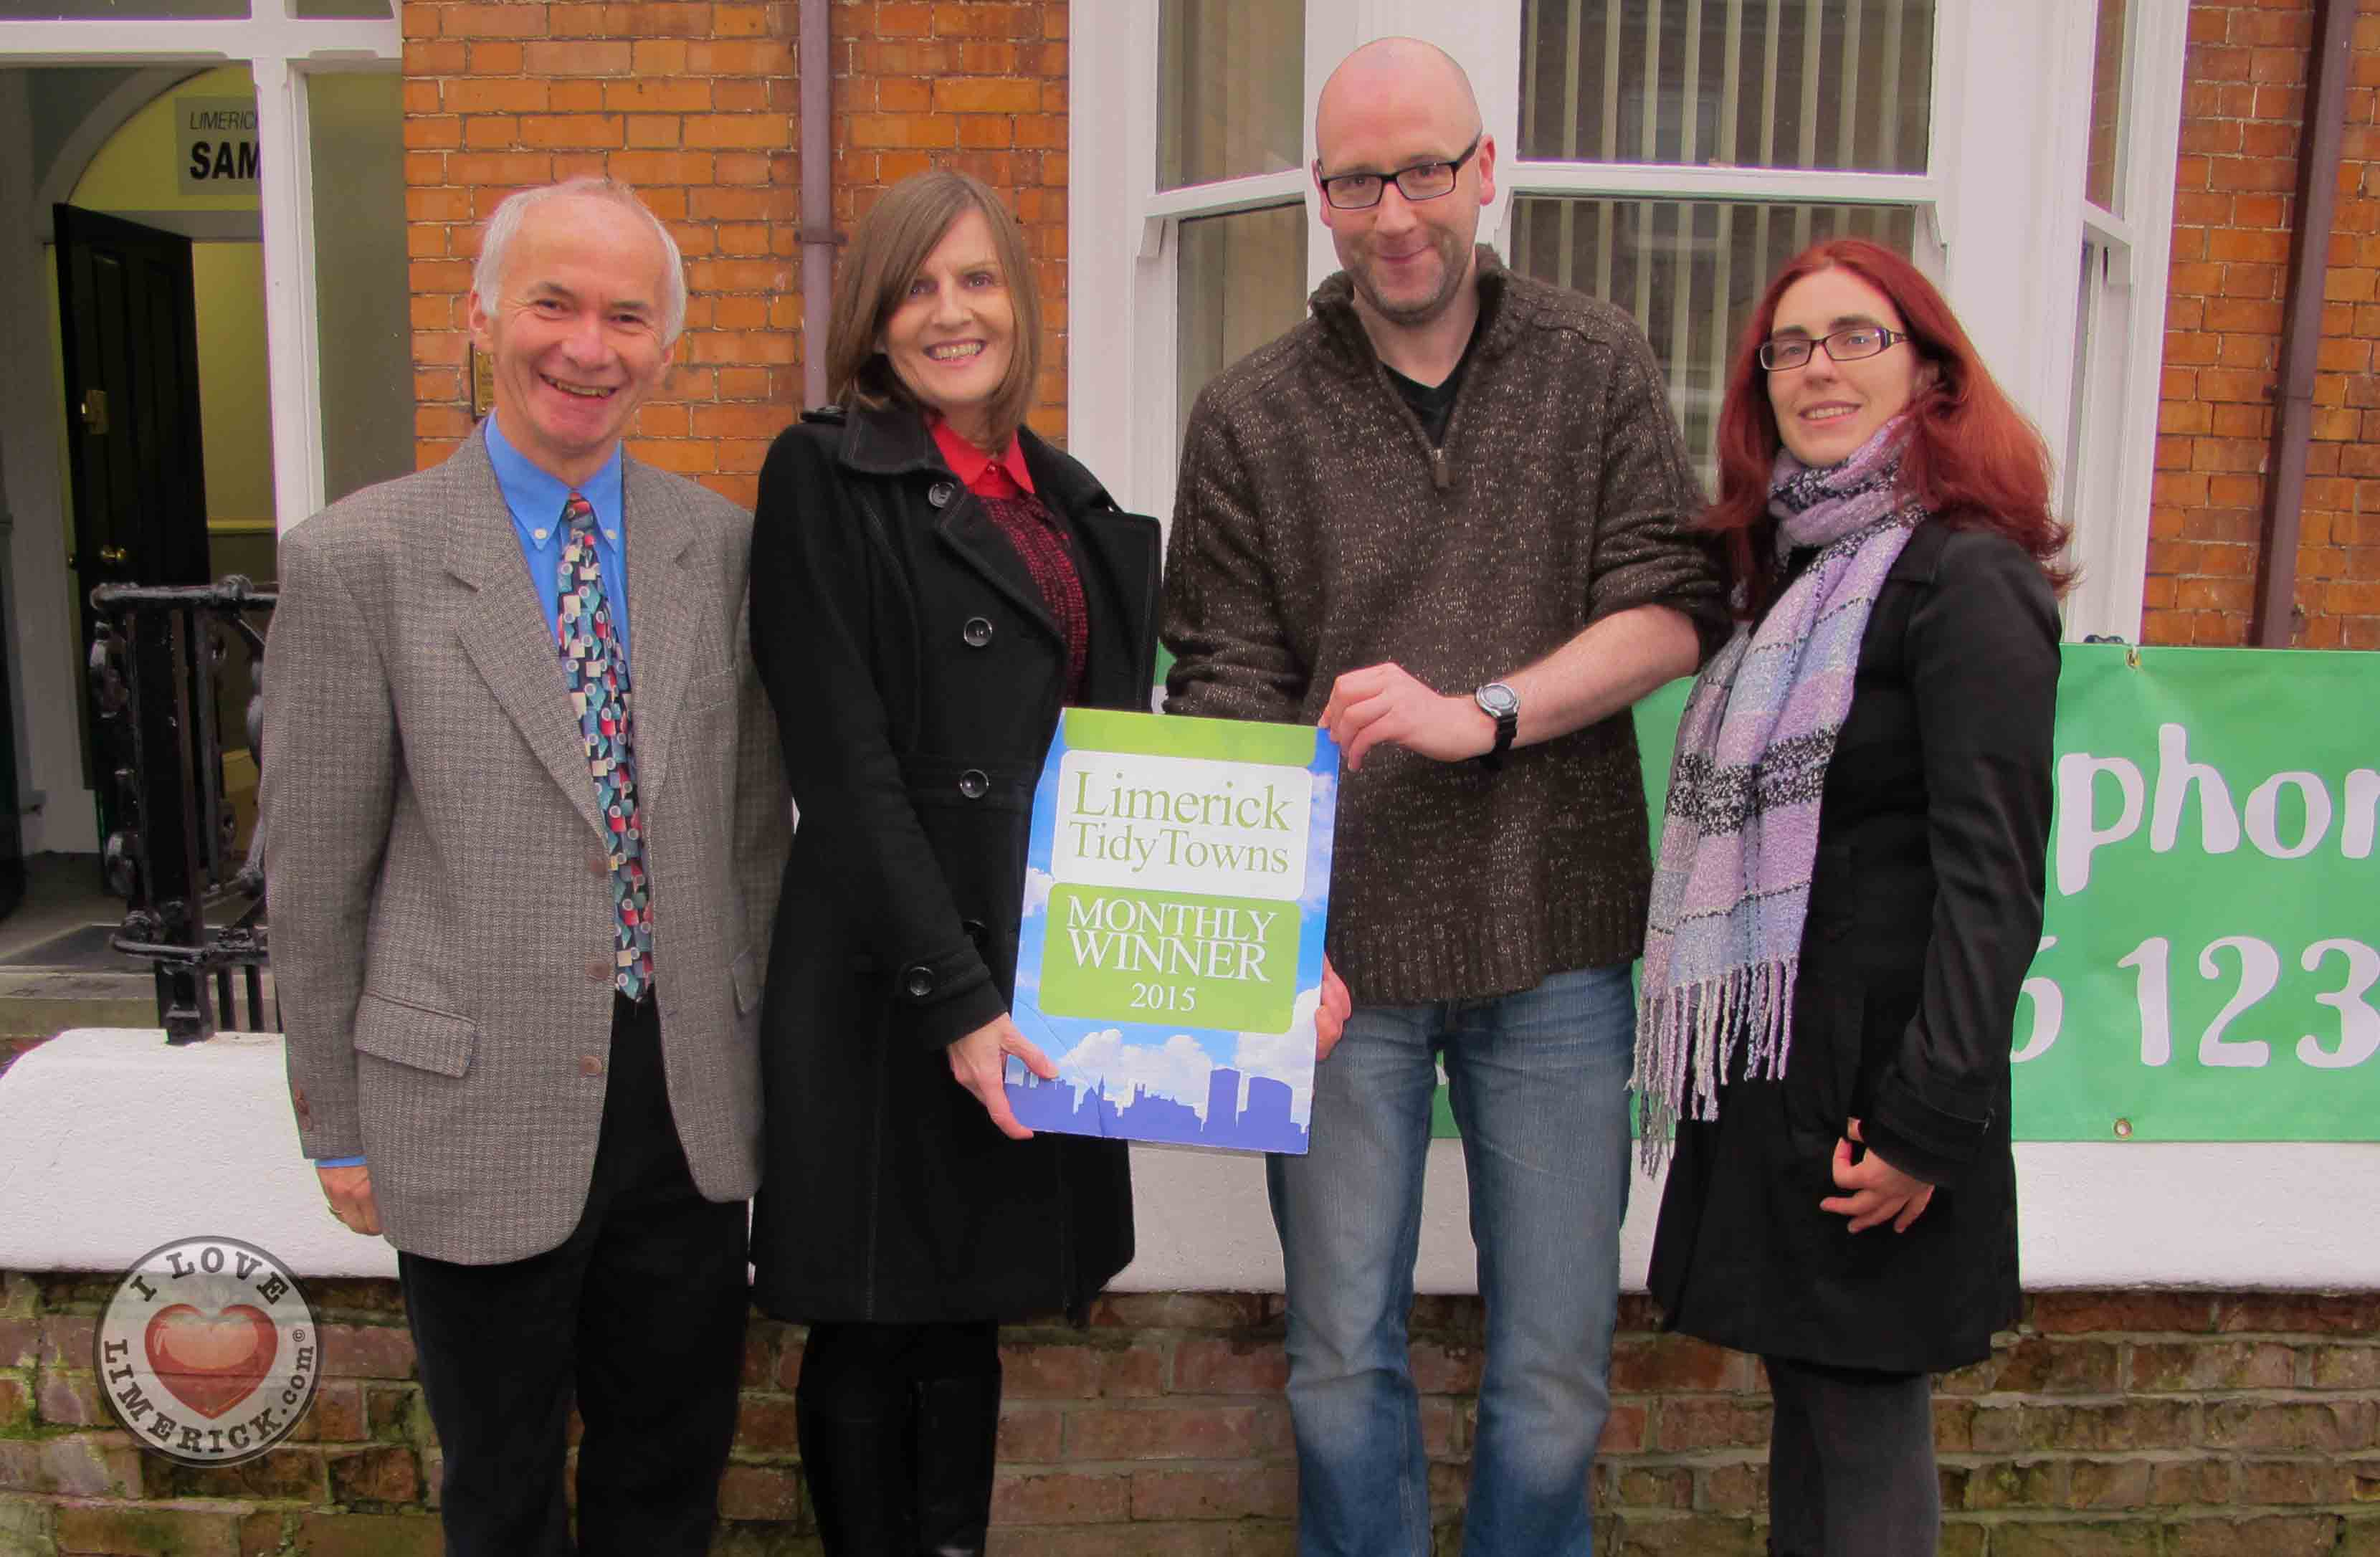 Limerick Tidy Towns award Samaritans for the month of November